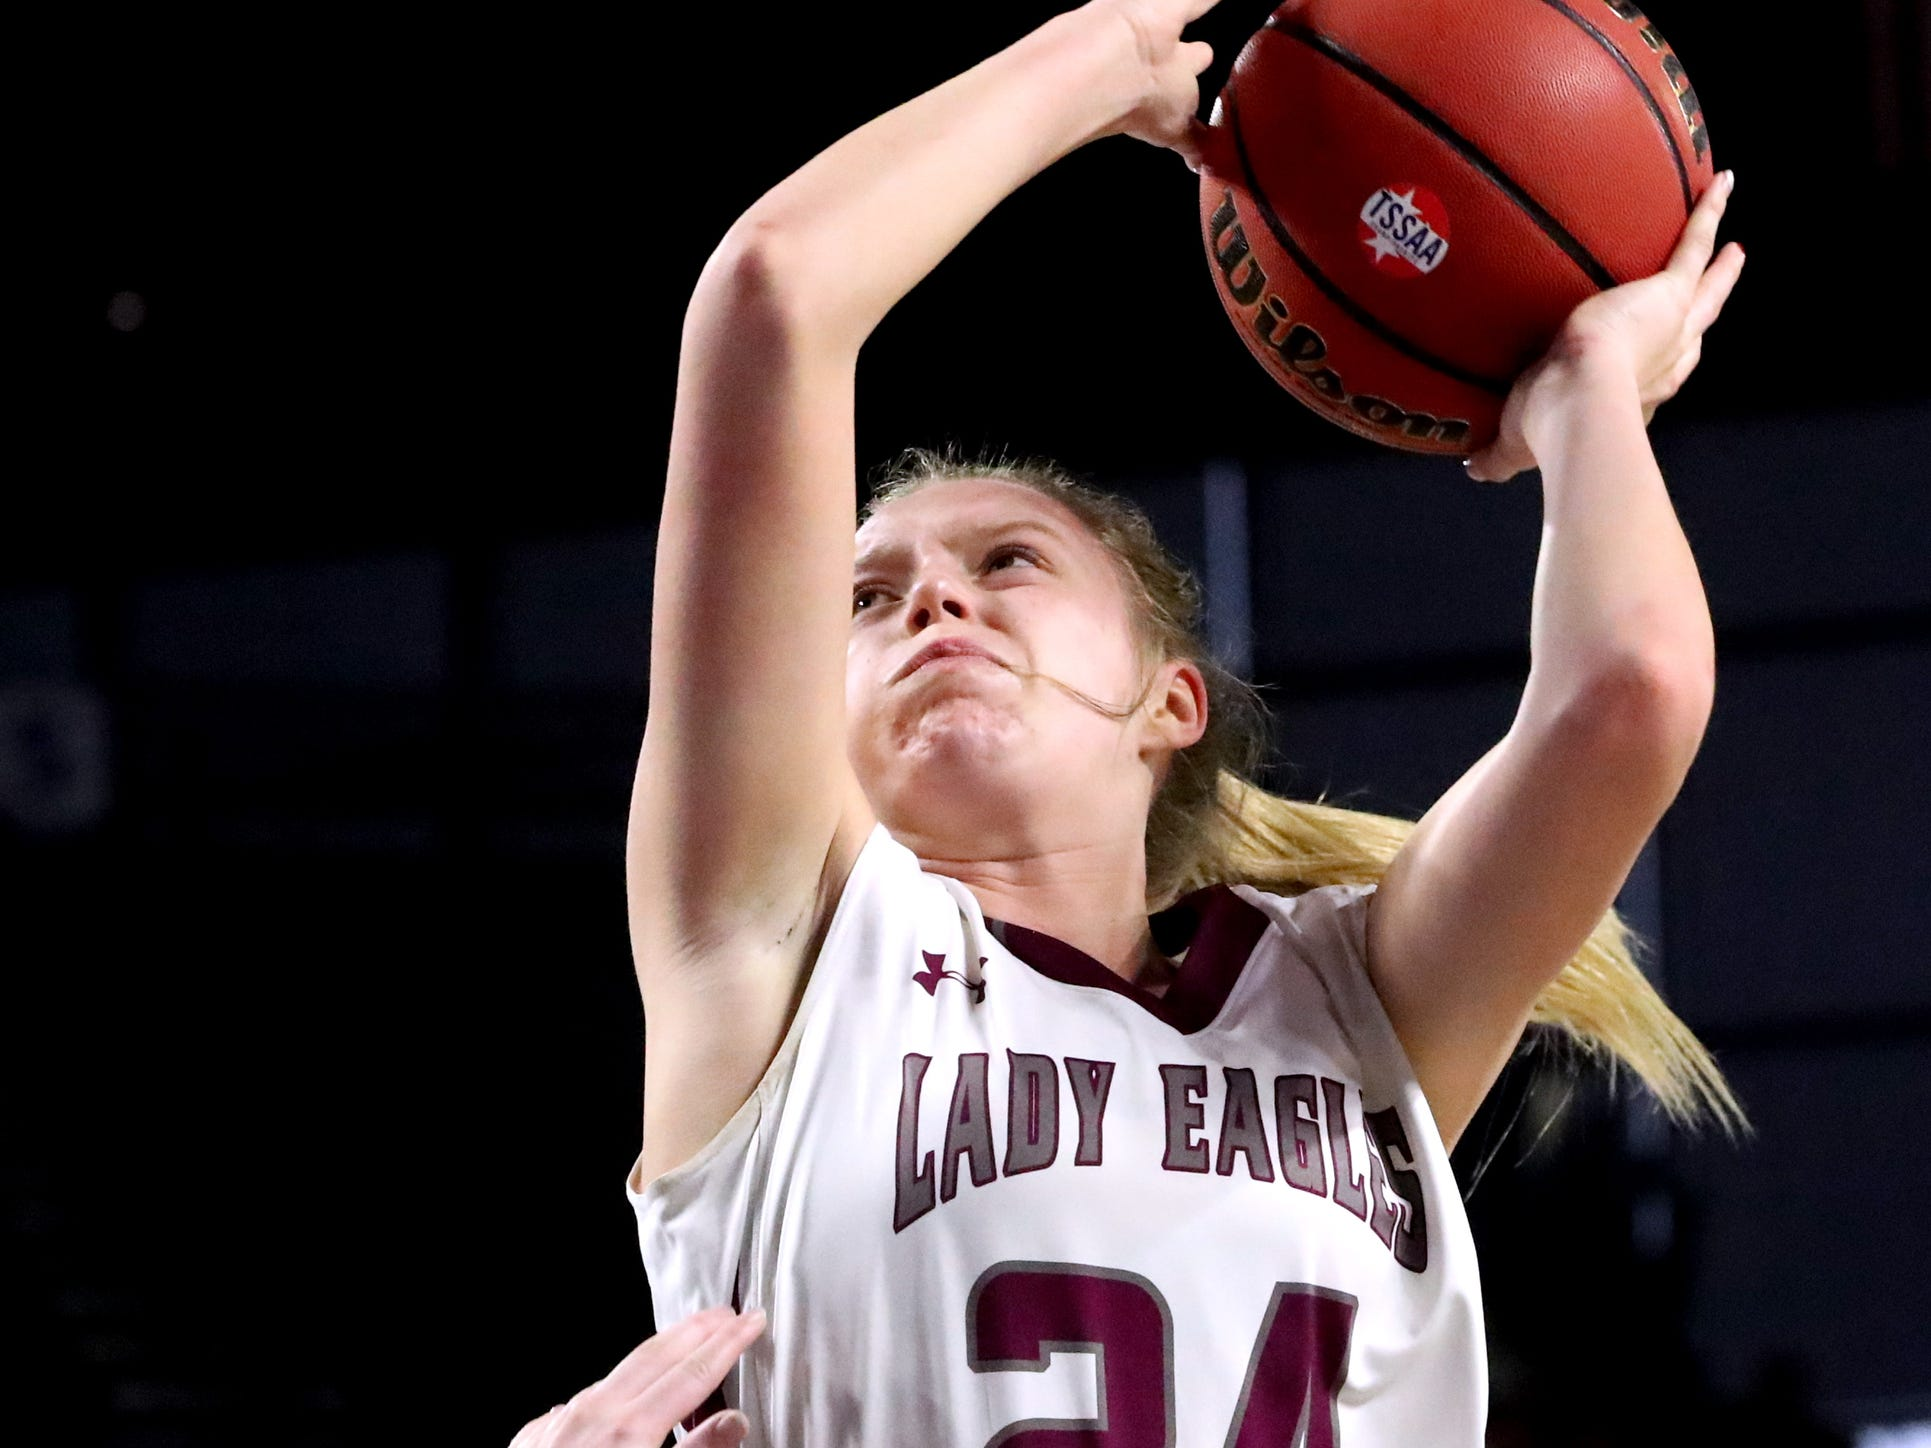 Eagleville's Anna Grace Clement (24) shoots the ball during the quarterfinal round of the TSSAA Div. 1 Class A Girls State Tournament against Midway, on Thursday, March 7, 2019, at Murphy Center in Murfreesboro, Tenn.